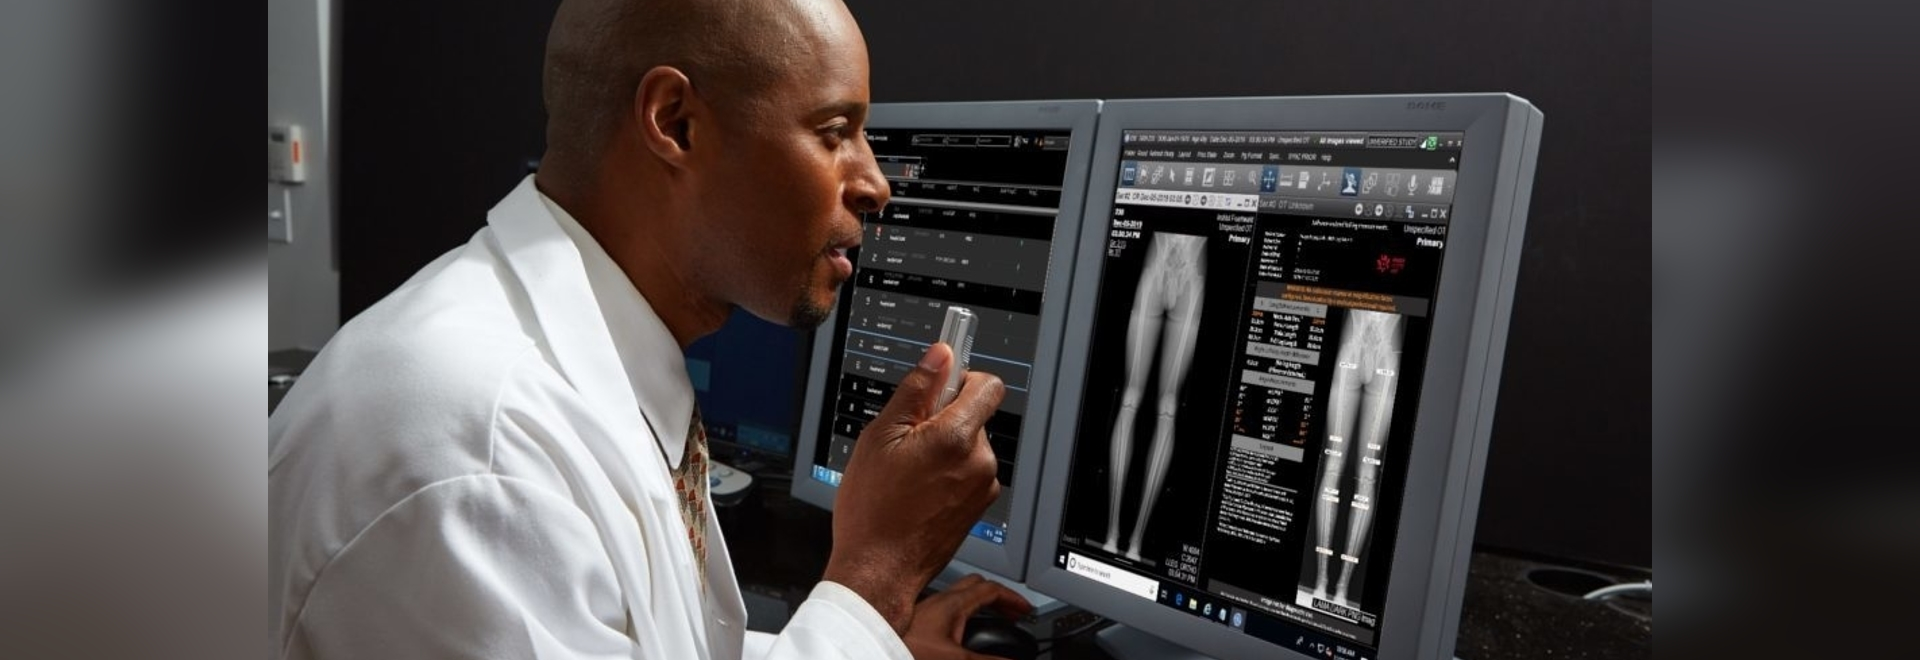 """radiologists (or more broadly speaking human readers) will not be replaced by software algorithms."""""""